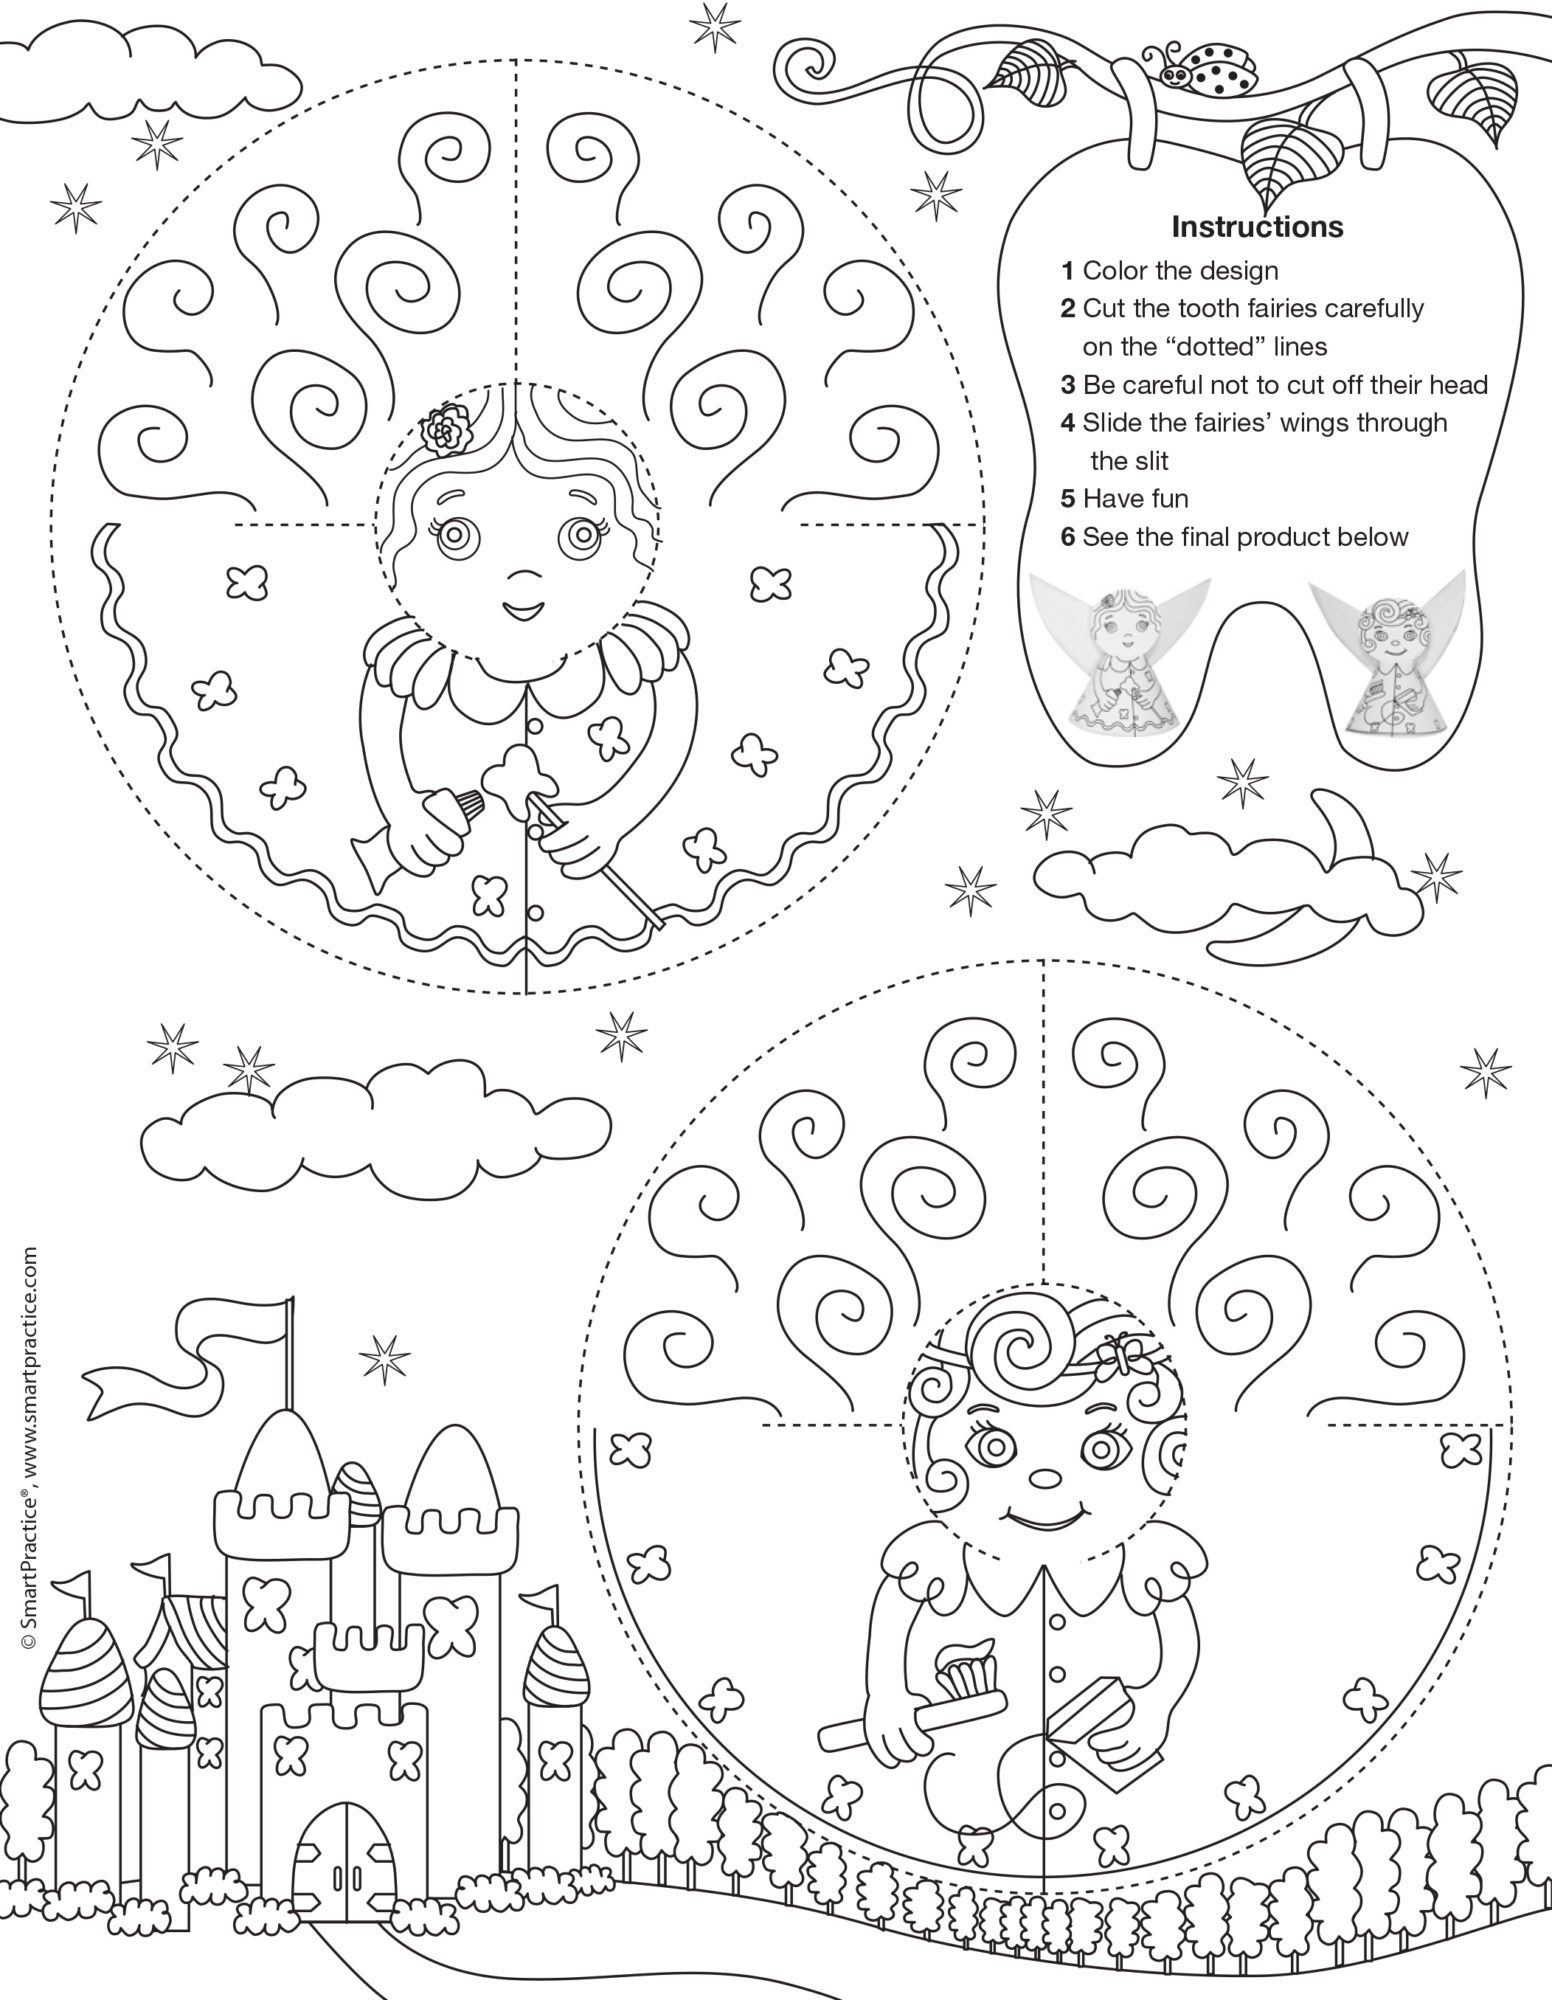 Coloring Pages With Instructions At Getdrawings